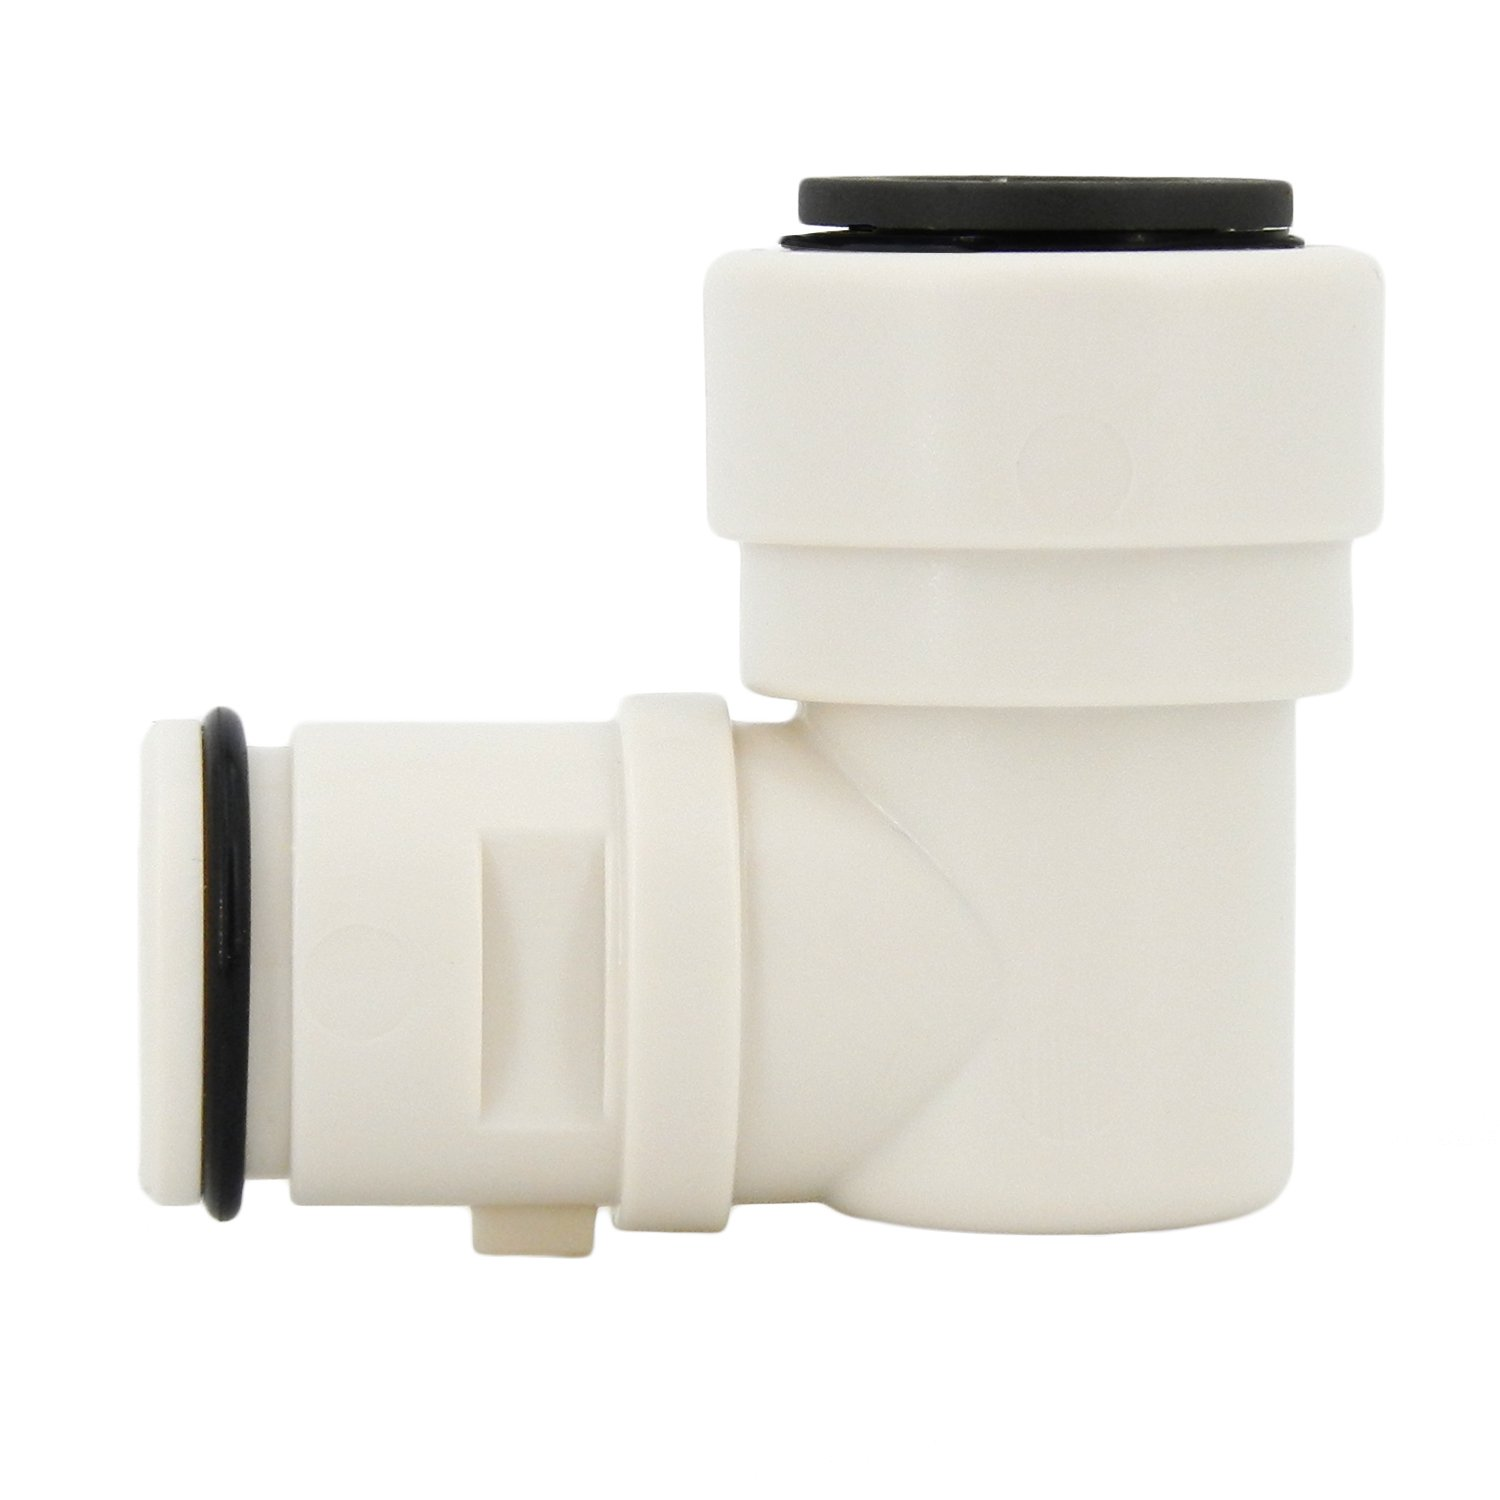 Hydro-Logic 1/2'' Quick Connect Feed Fitting for Merlin GP & Evolution-RO1000, White